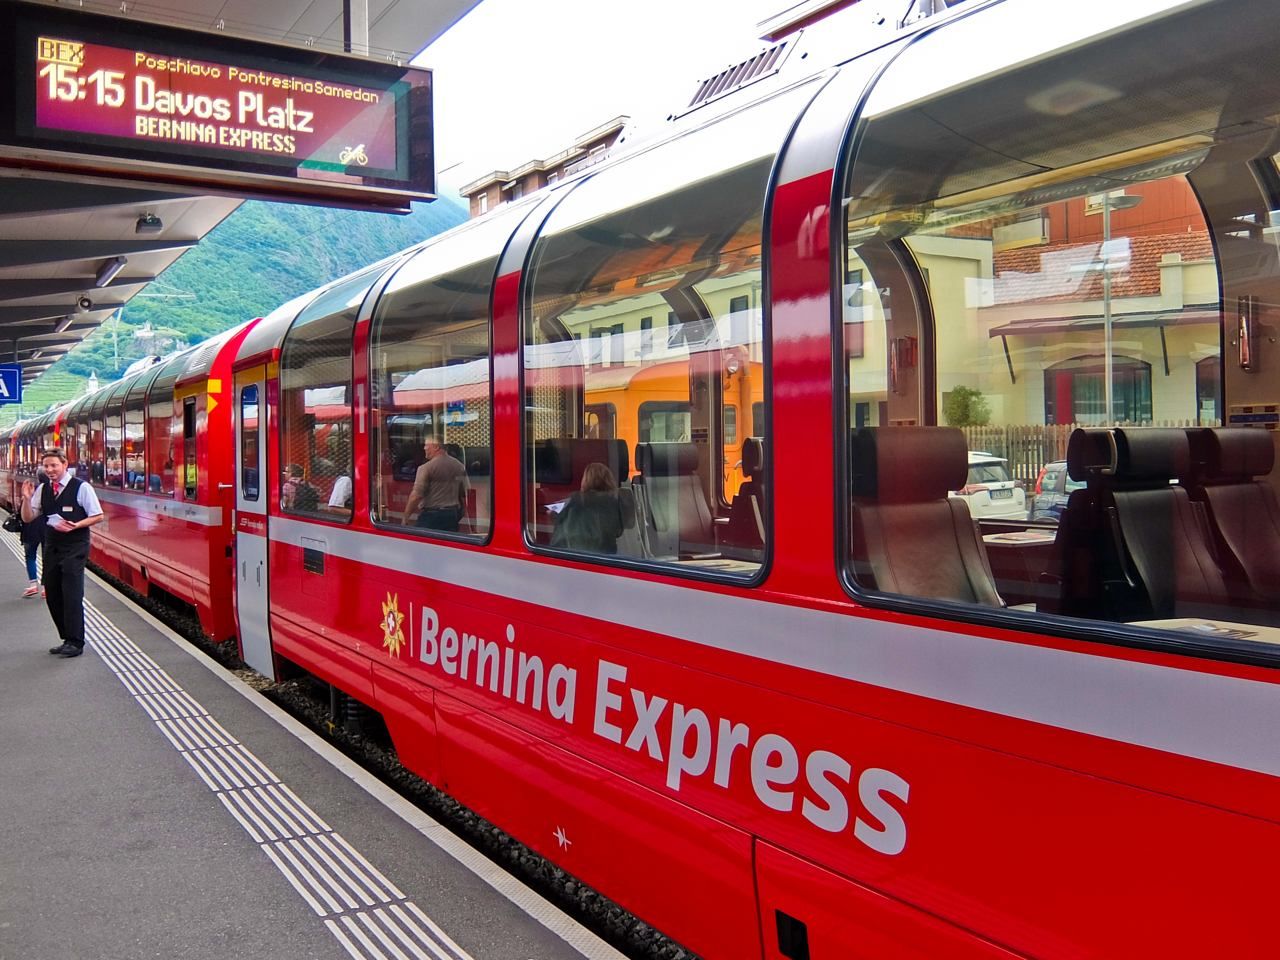 Bernina Express Train in Tirano